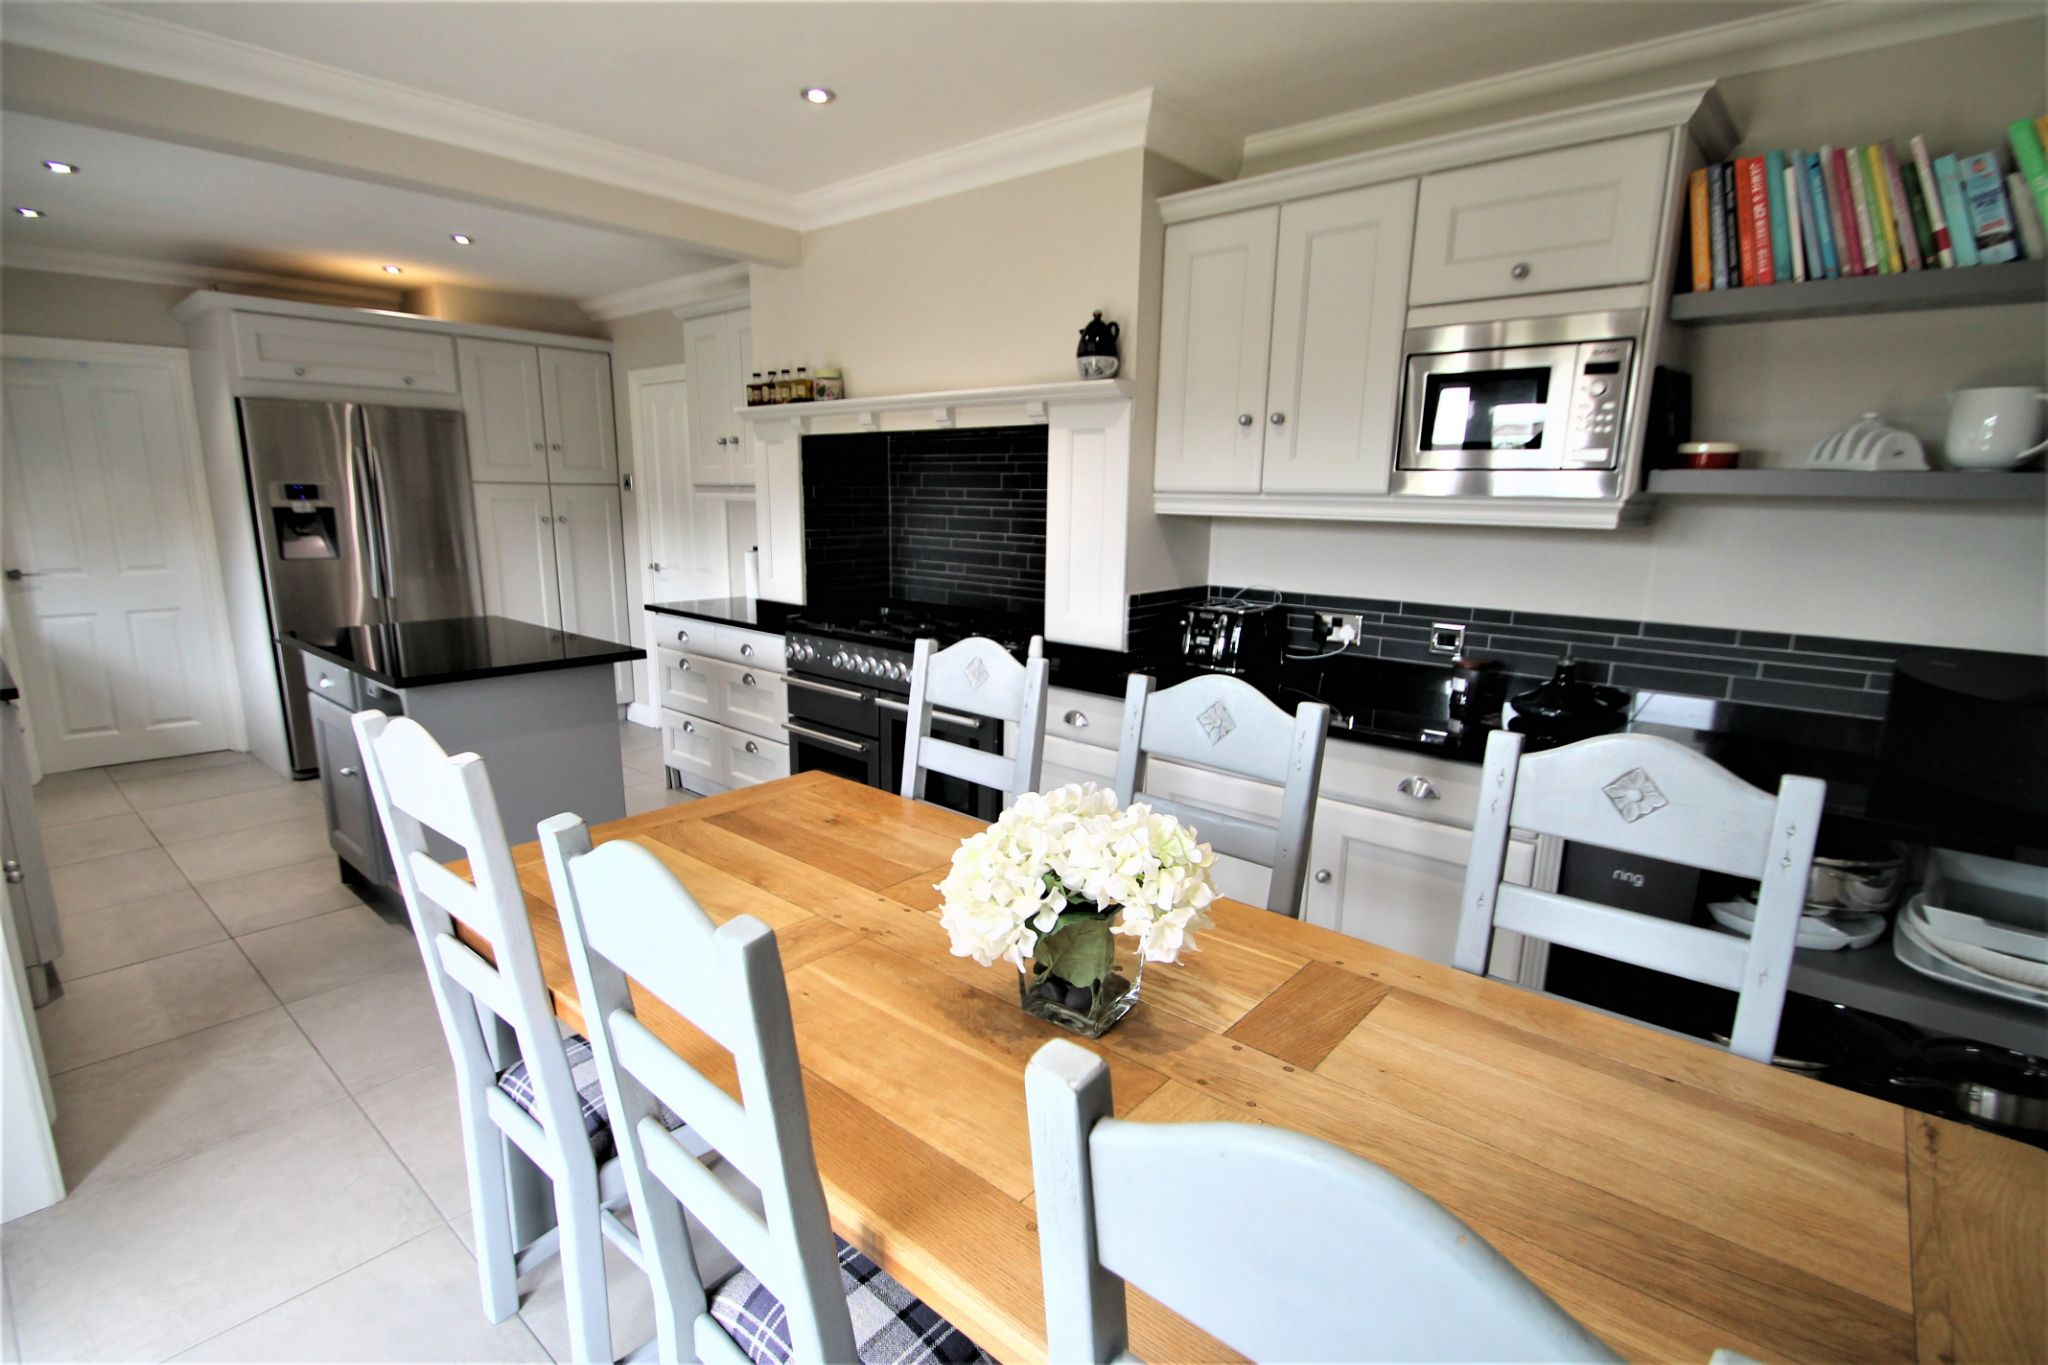 5 Bedroom Detached House For Sale - Dining/Kitchen